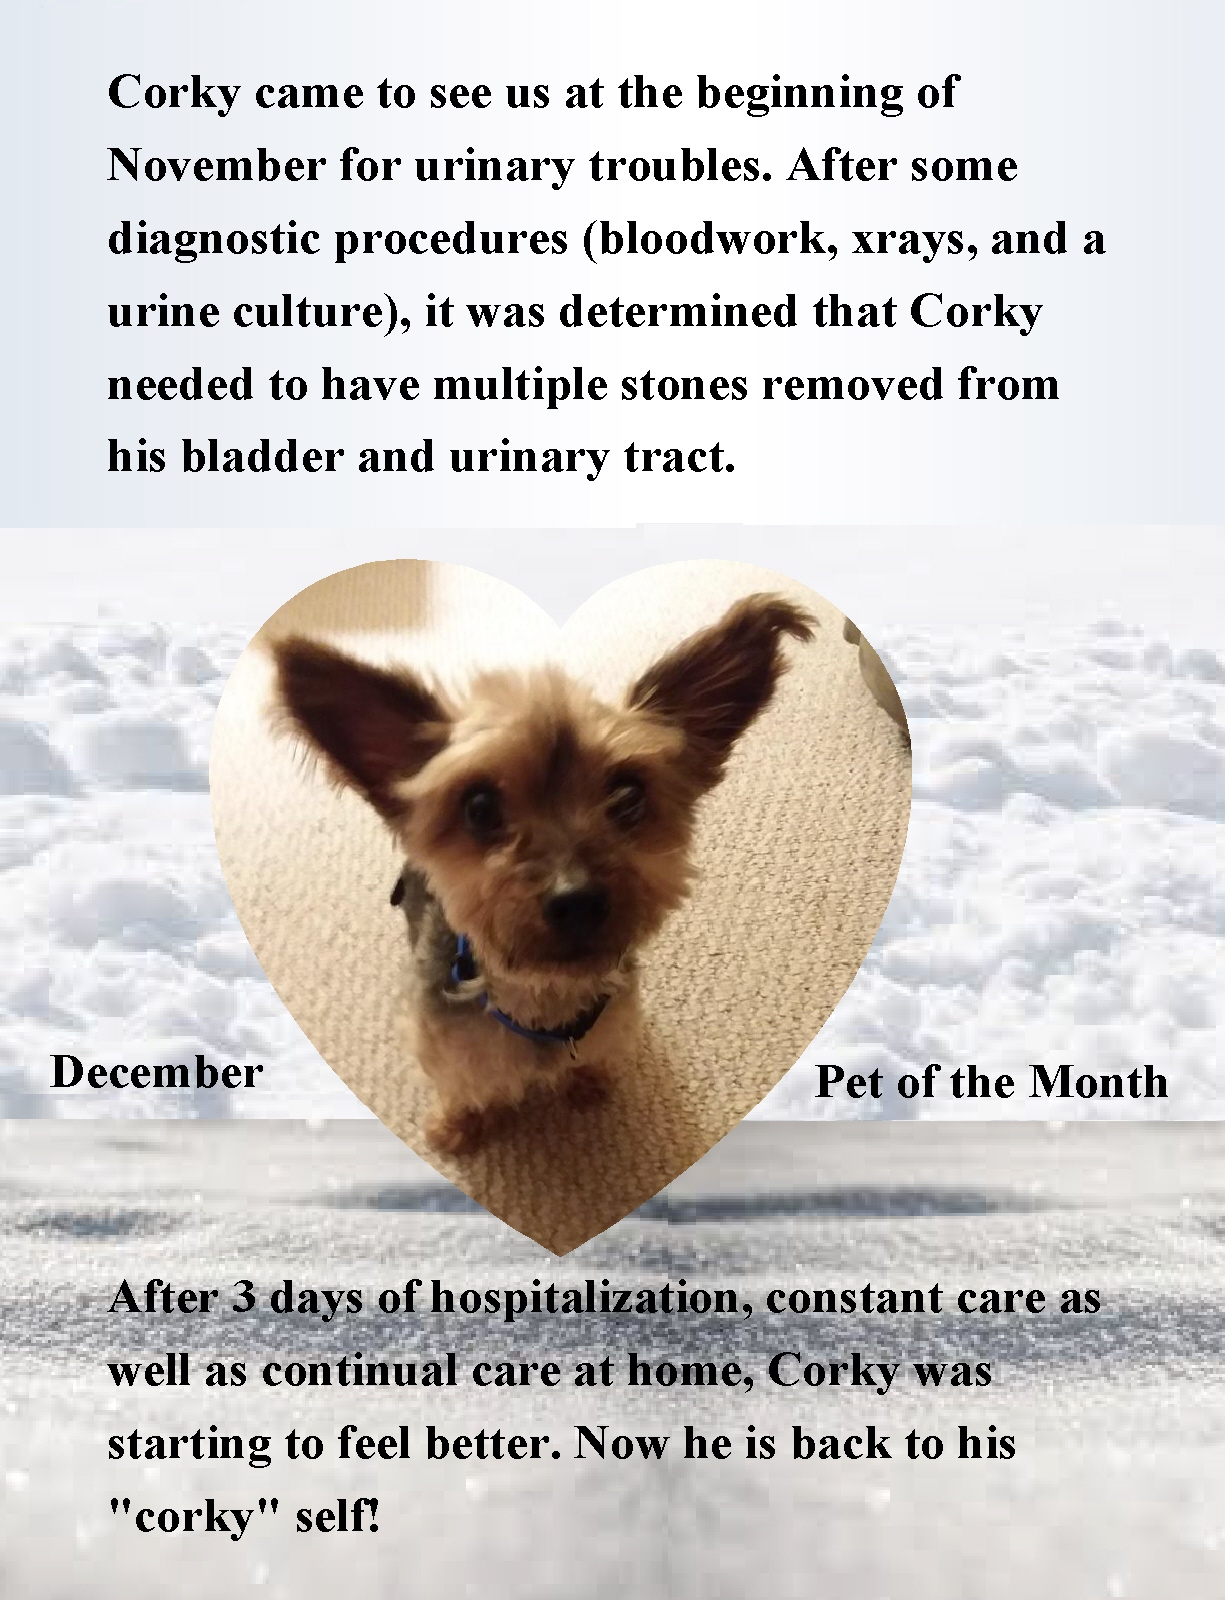 Dec Pet of the month